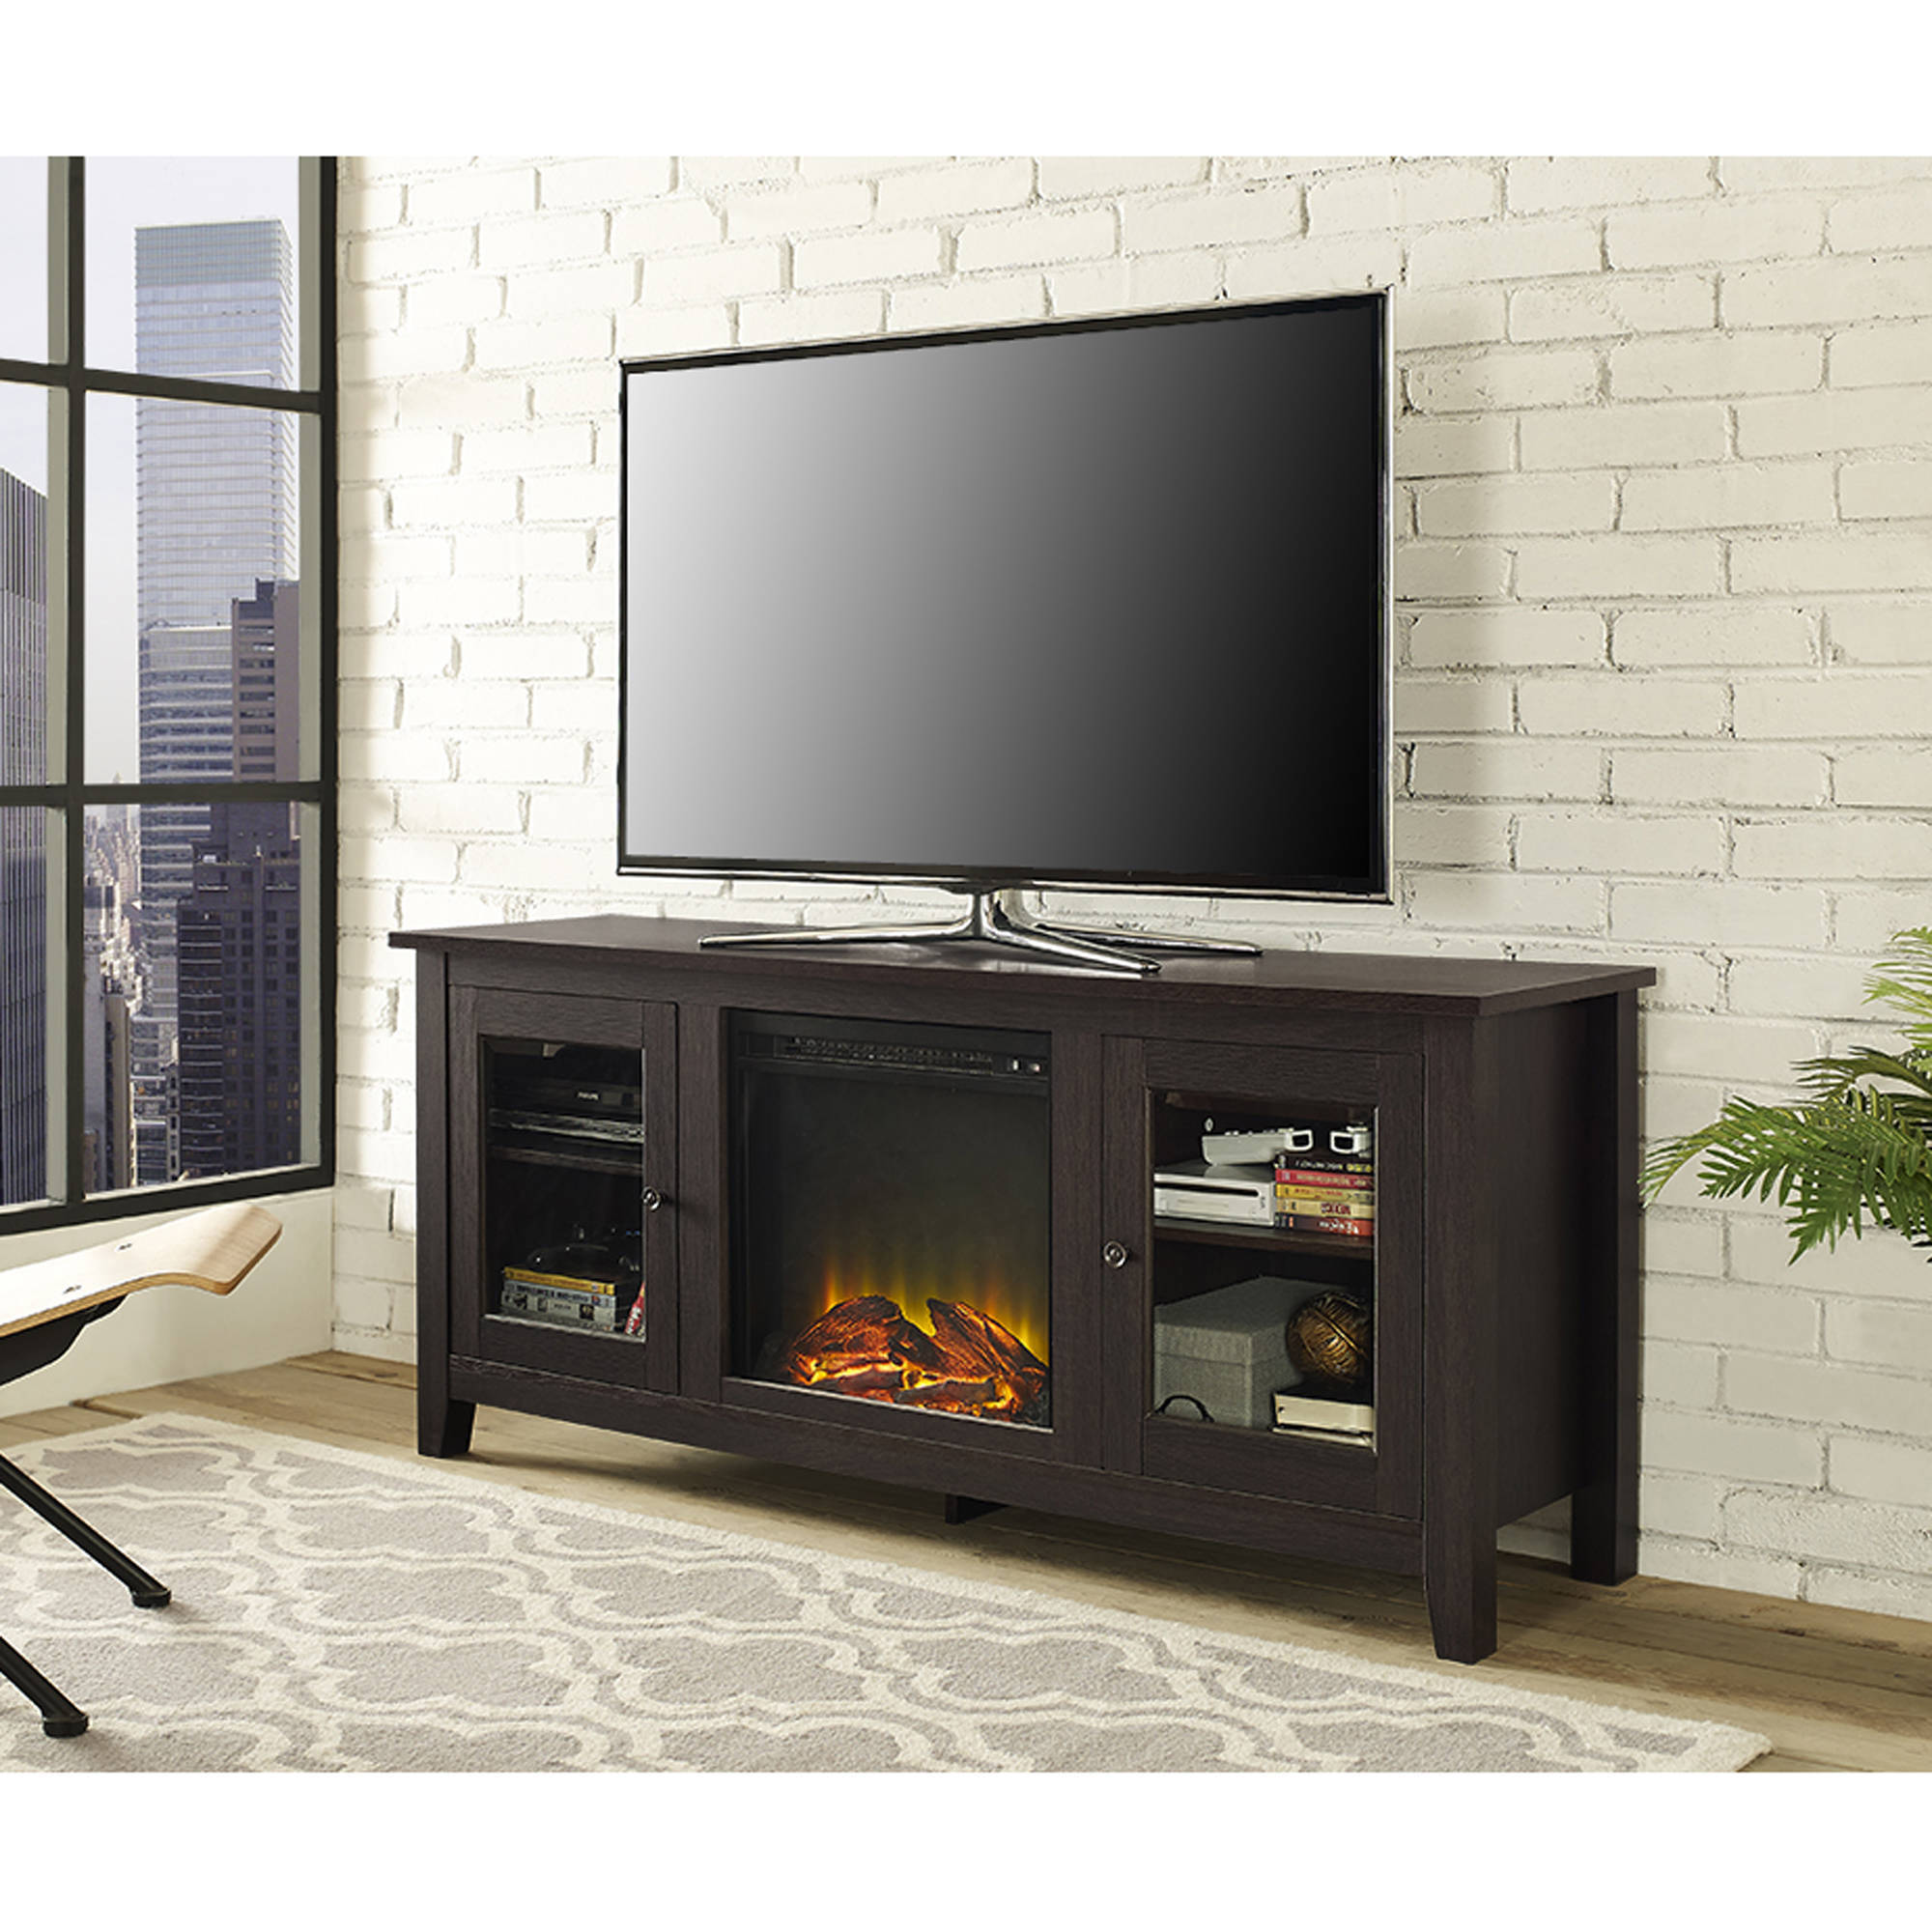 white tv cheap pacer fireplace cheapest stand flint entertainment contemporary costco furniture electric